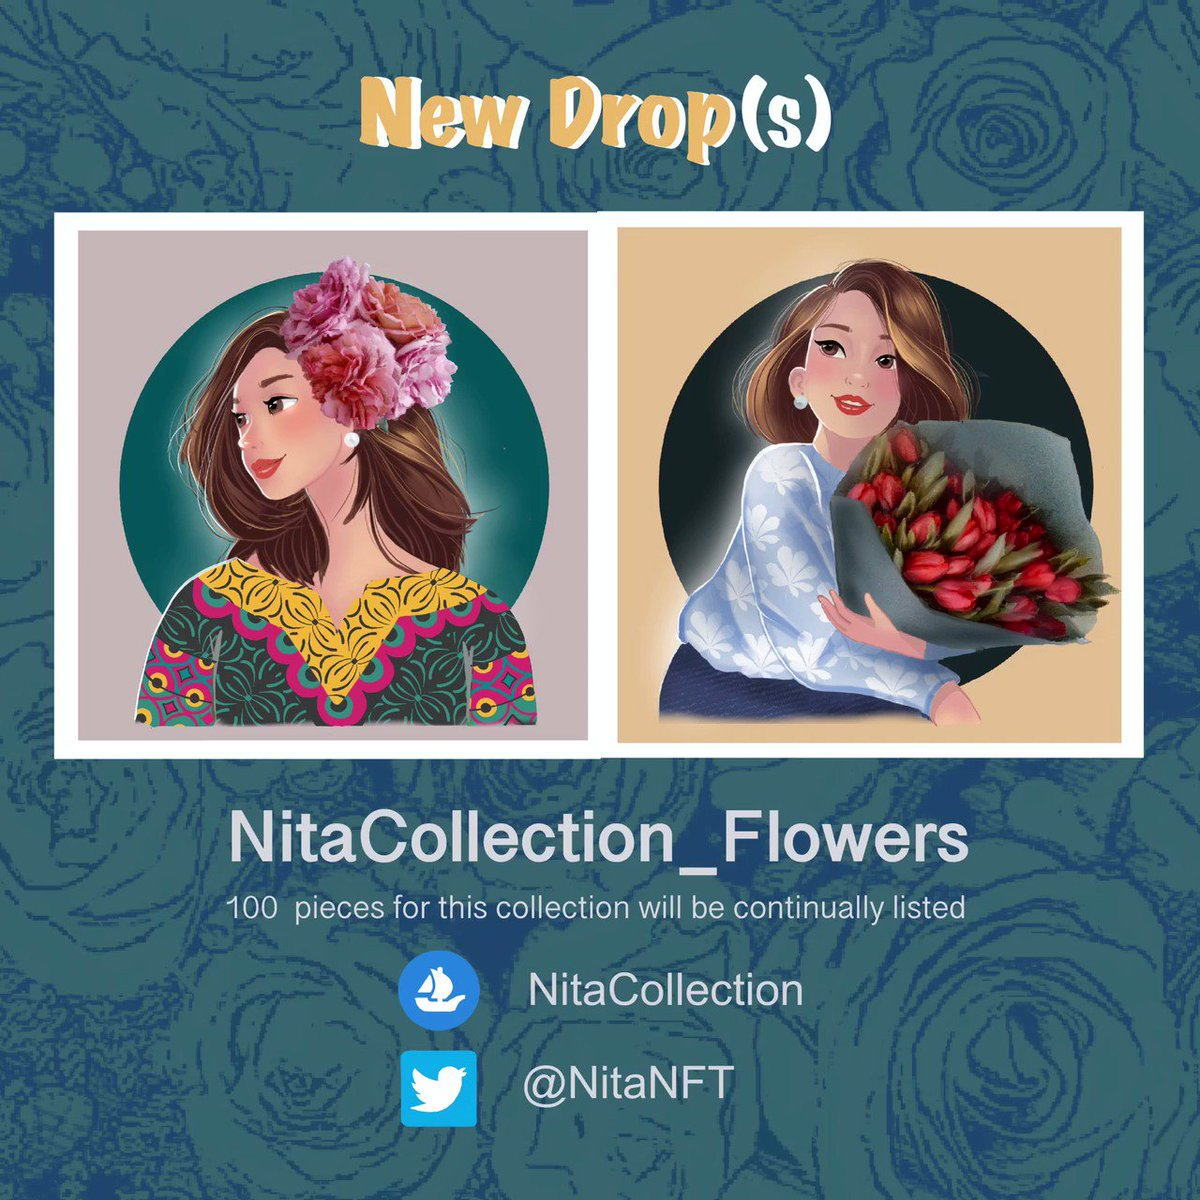 NitaCollection_Flowers is inspired by the desire to capture beautiful flowers in memory through adorable characters.  Come find your favorite flowers and characters  opensea.io/NitaCollection  #nftcommunity #nftshill #nftthailand #nftcollectible #opensea#openseanft